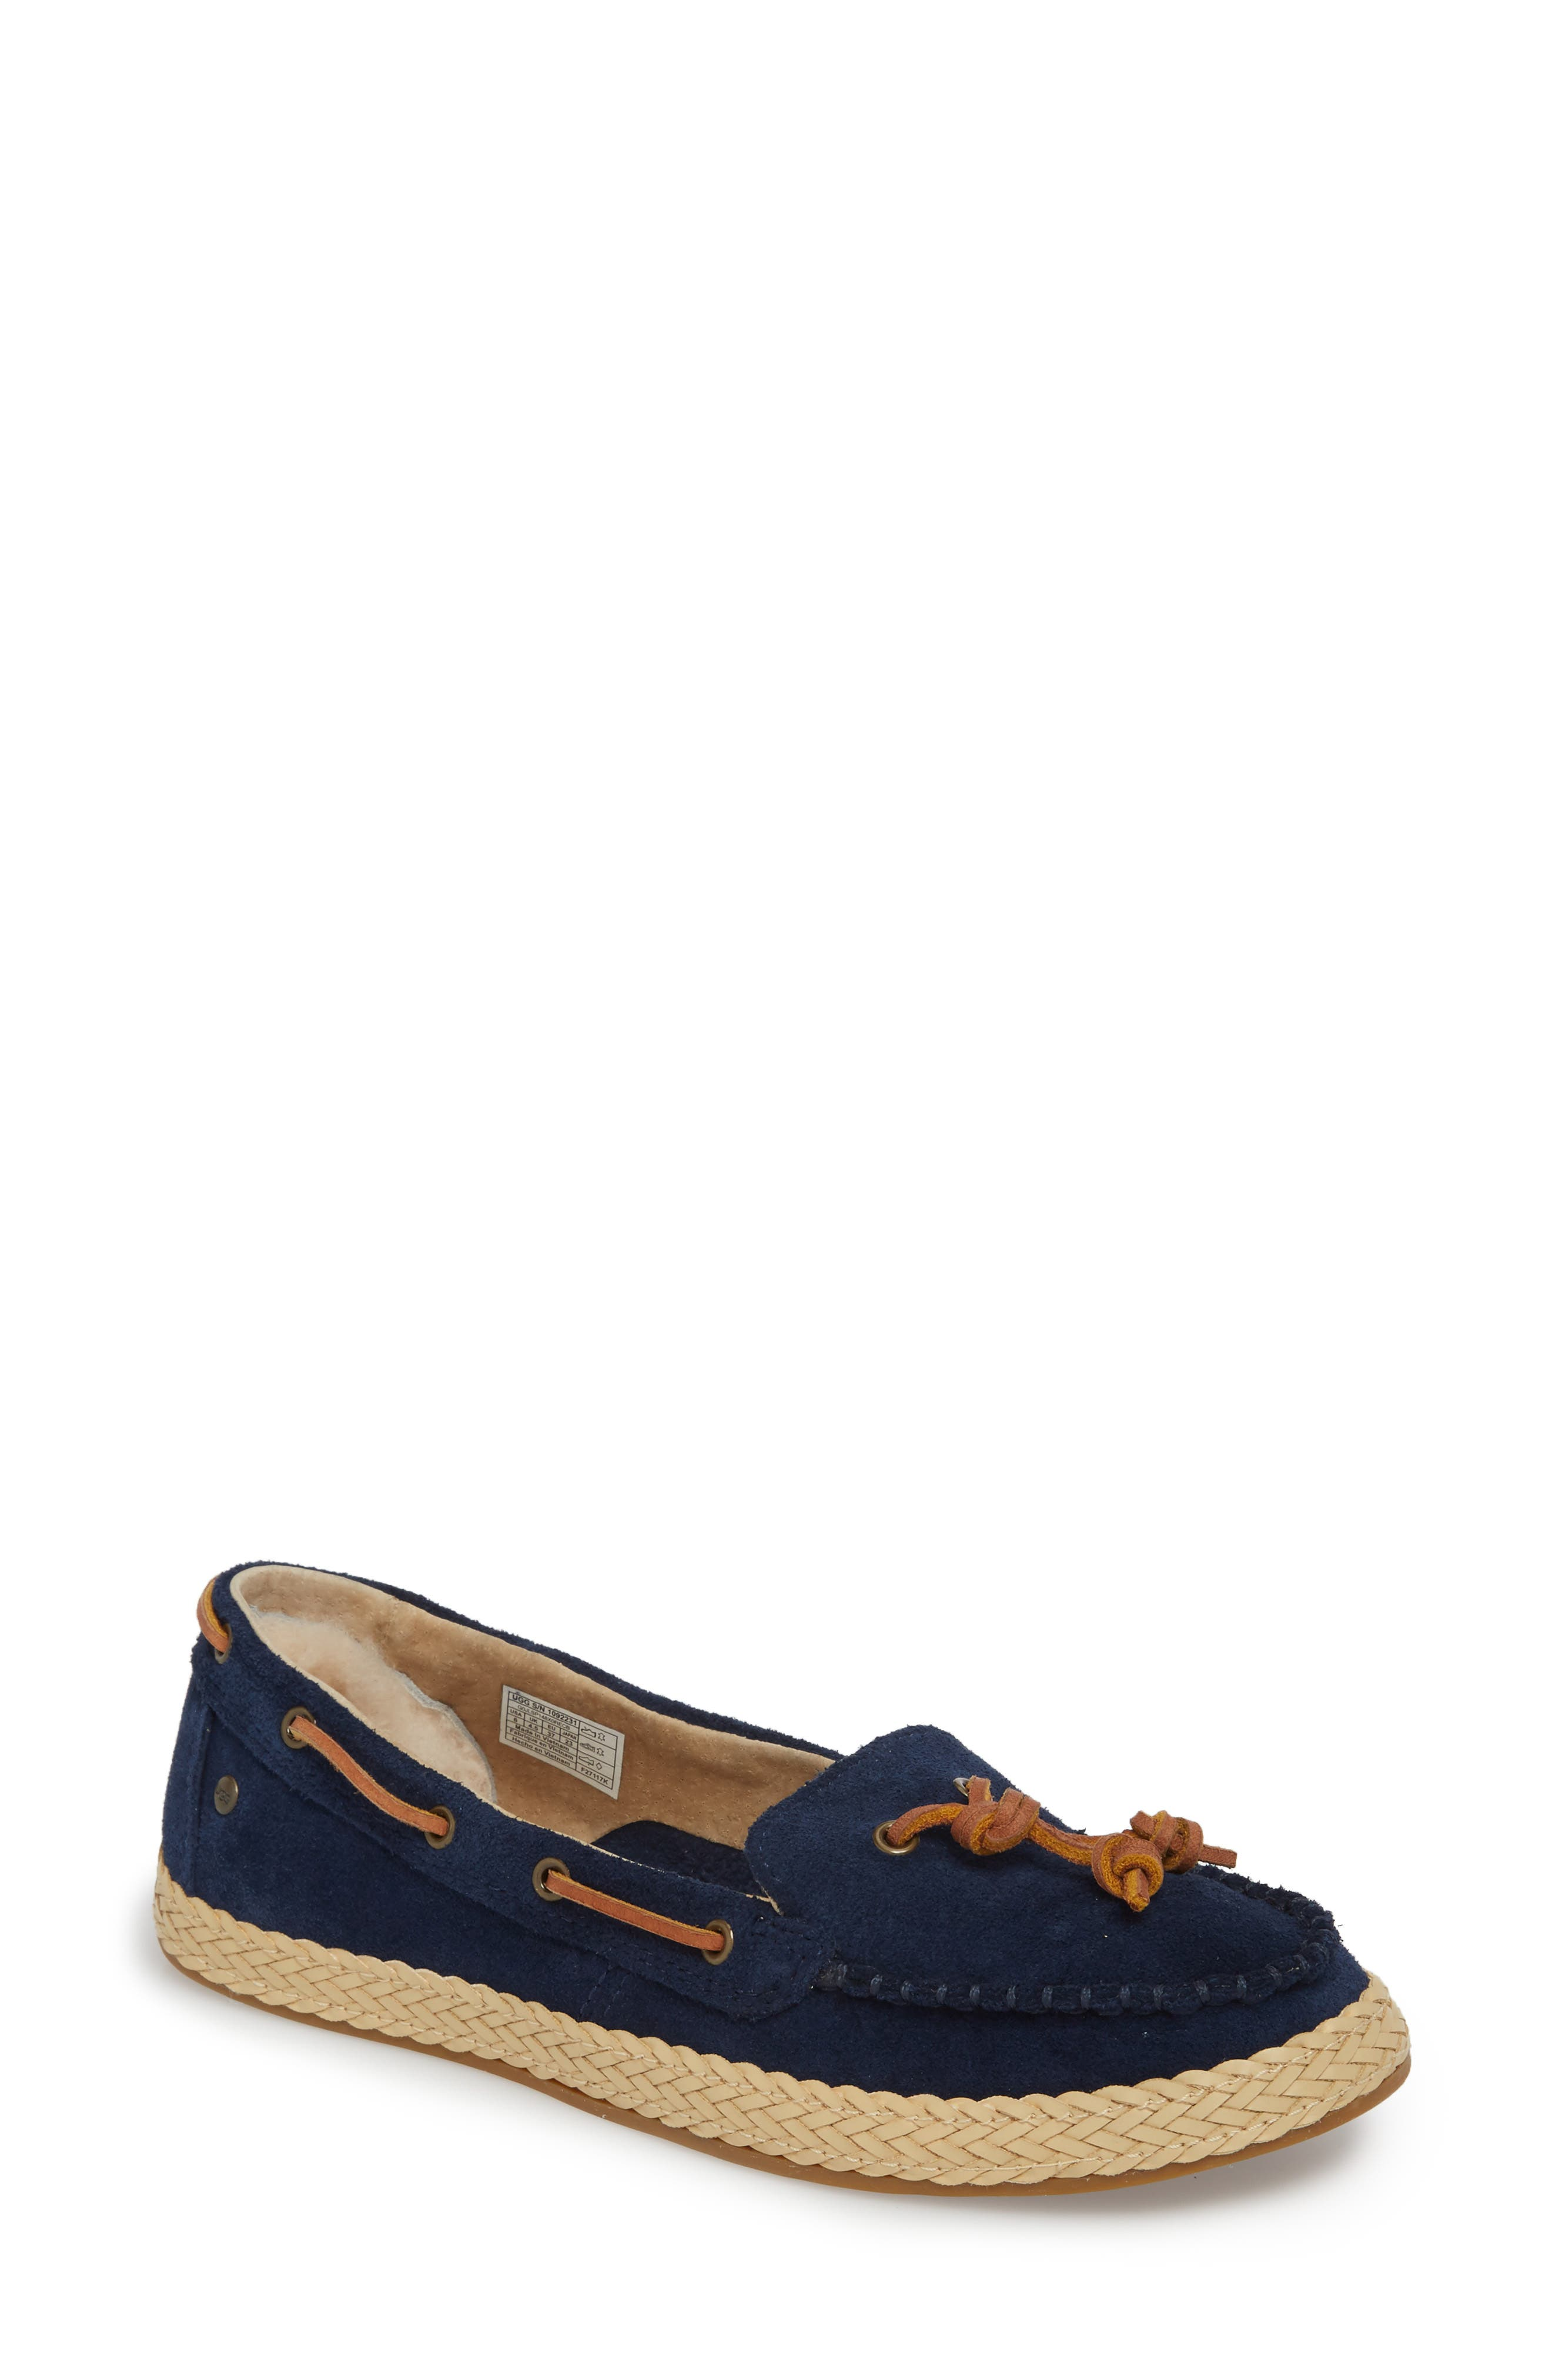 Channtal Loafer,                             Main thumbnail 1, color,                             Navy Suede